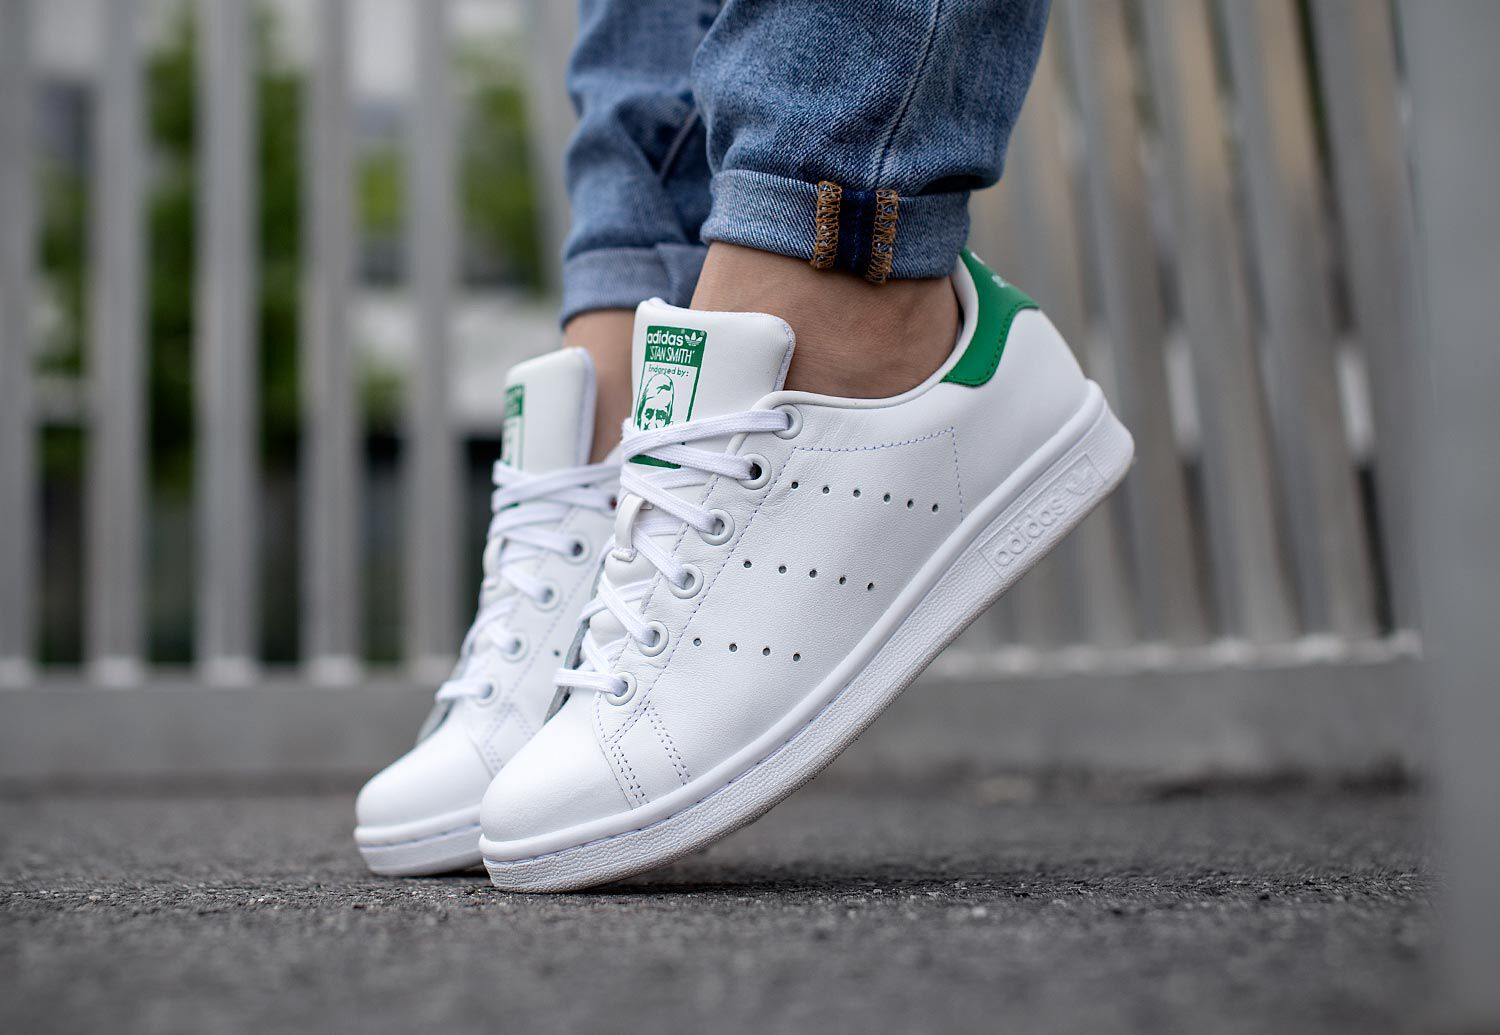 Adidas Stan Smith Sneakers Low At Stylefile